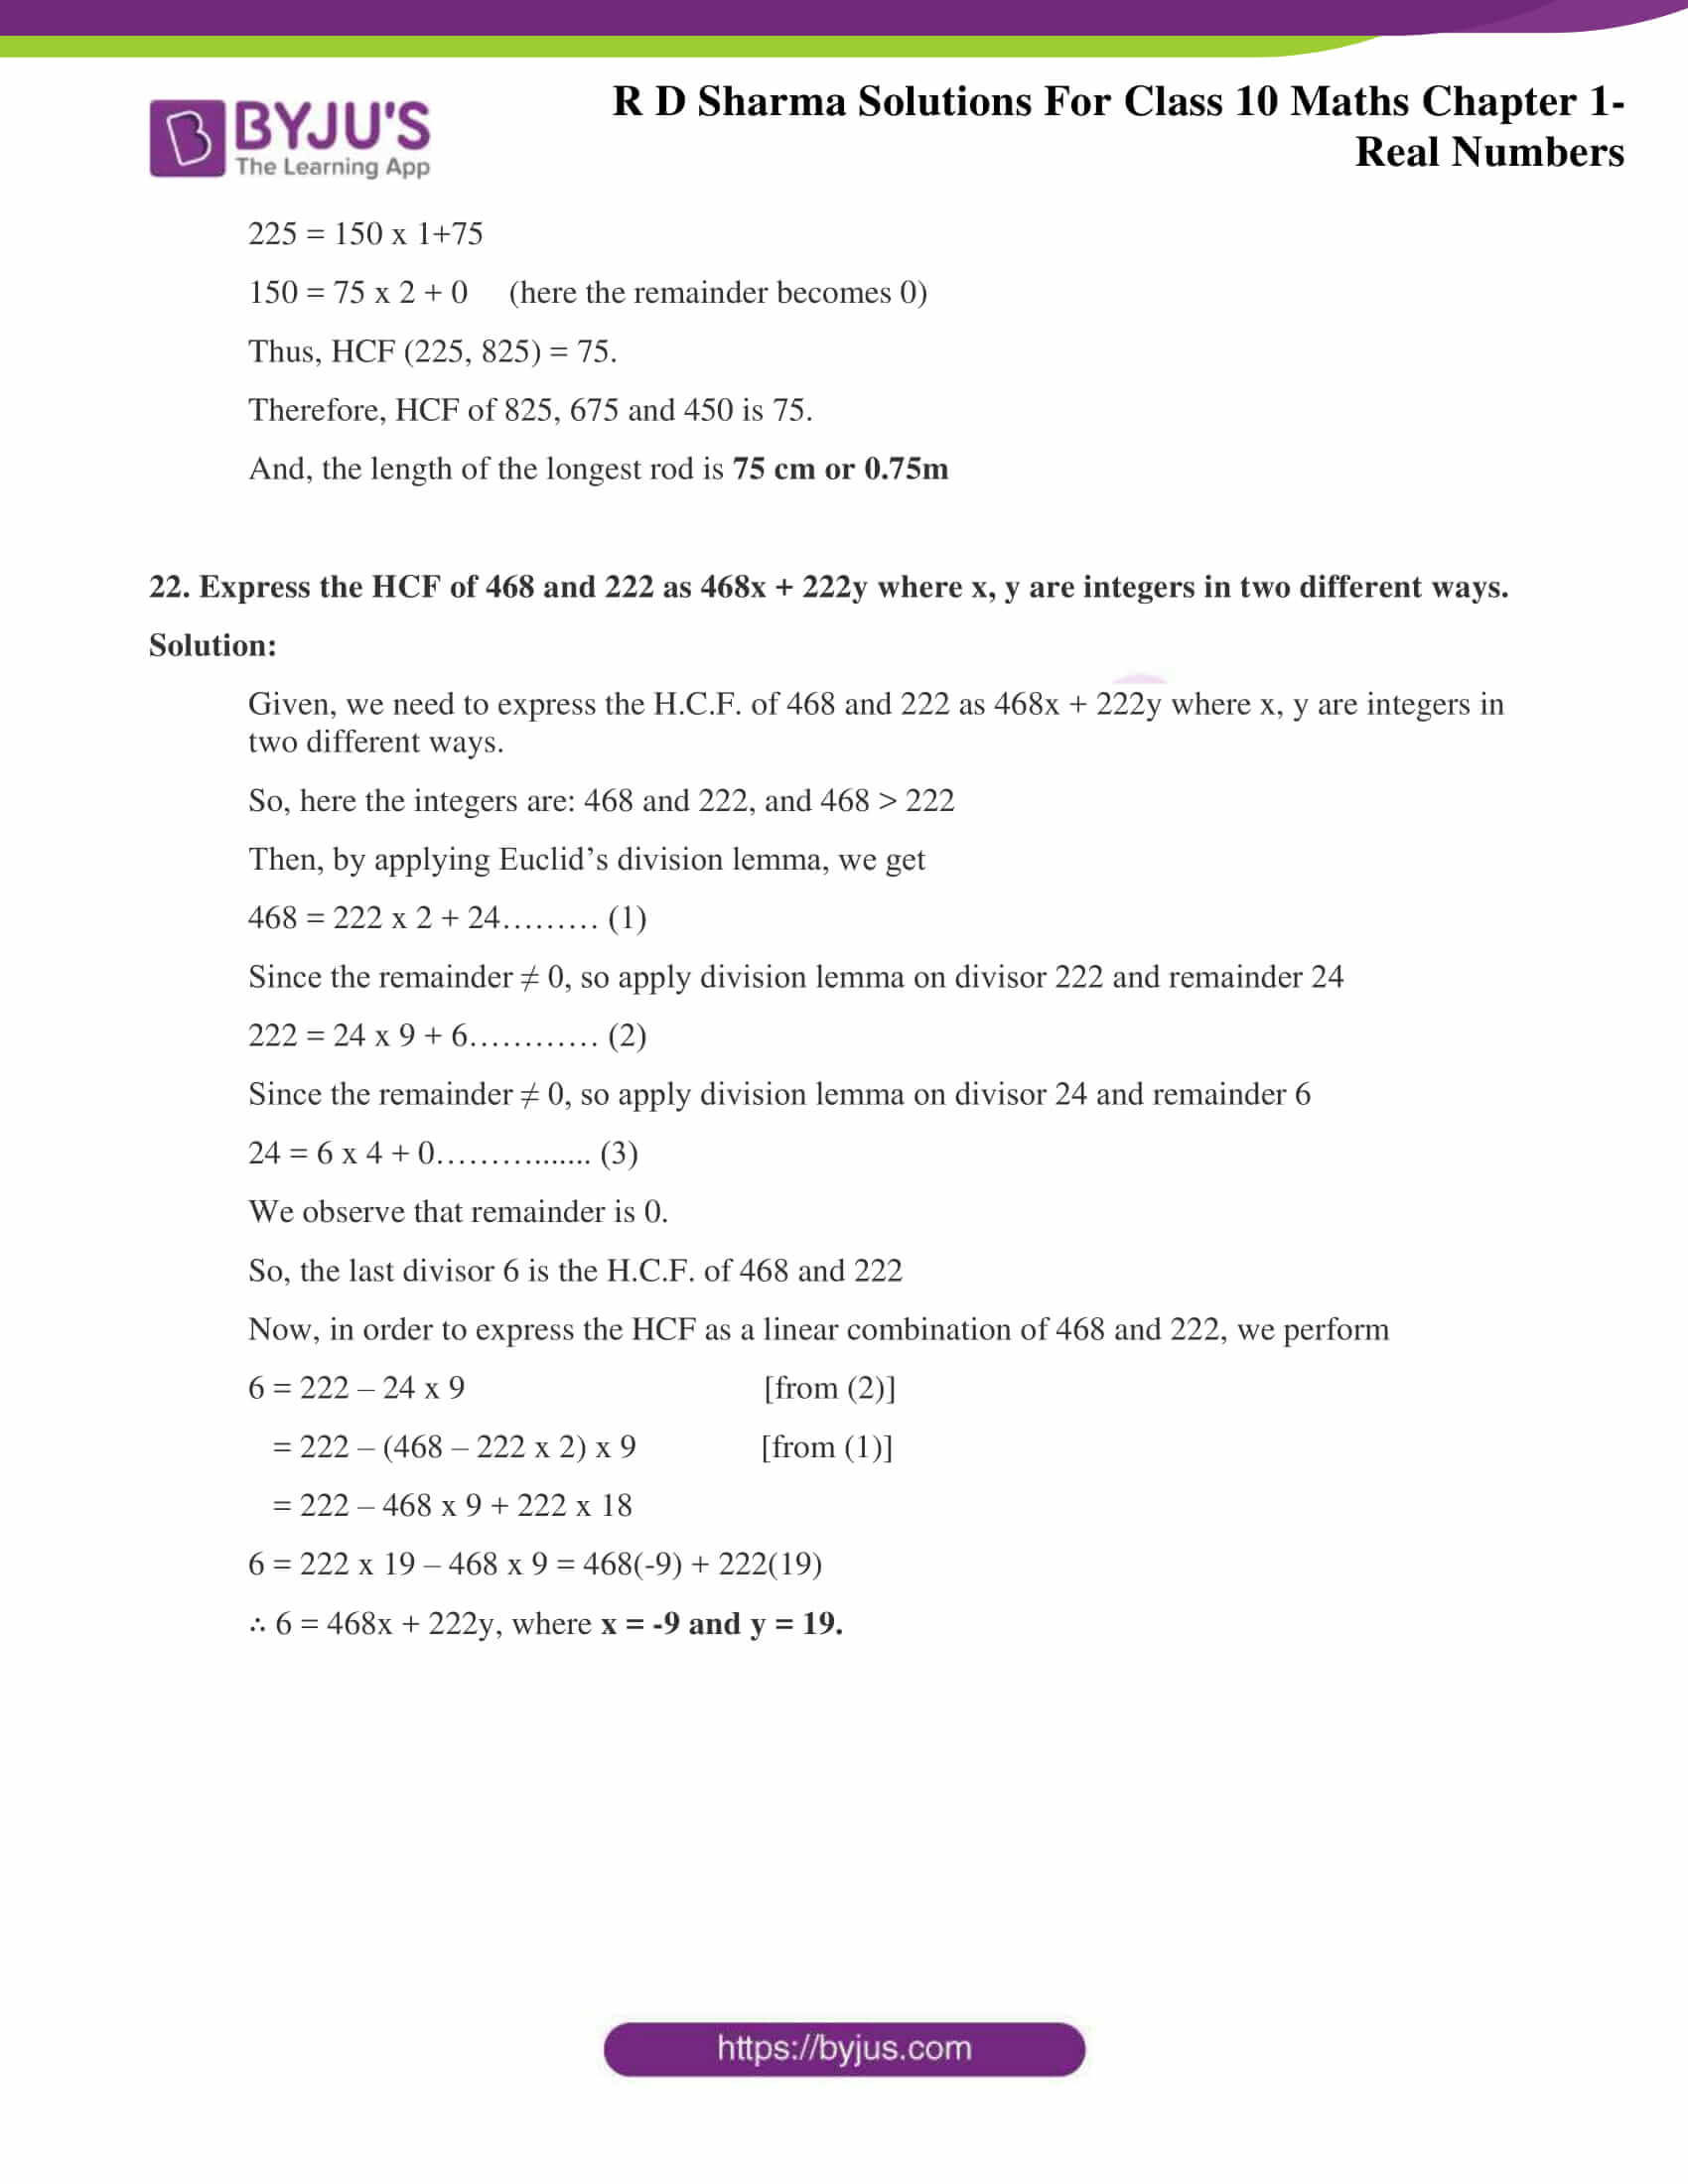 rd sharma solutions for class 10 chapter 1 ex 1.2